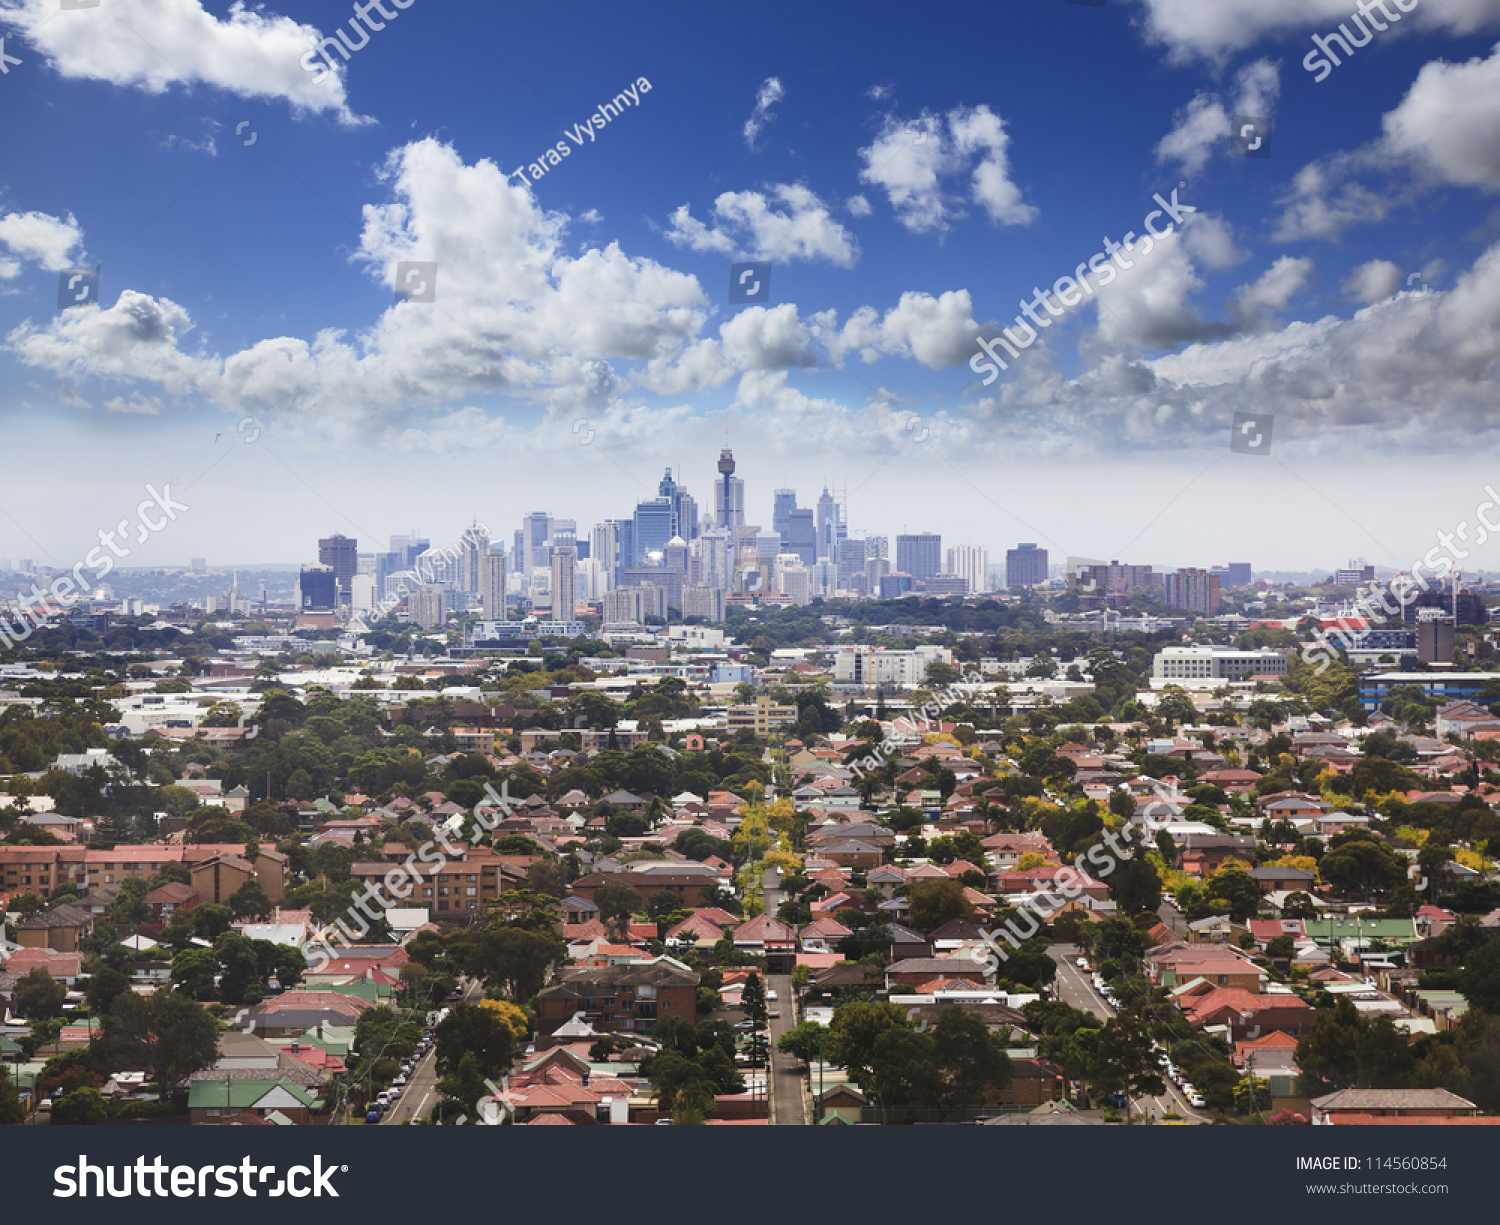 helicopter over sydney with Stock Photo Sydney City Cbd Aerial View From Helicopter Above Surrounding Residential Suburbs Blue Cloudy Sky on Supermodel Elle Macpherson Splits With Billionaire Husband After Four Years 35820302 as well Stock Photo Sydney City Cbd Aerial View From Helicopter Above Surrounding Residential Suburbs Blue Cloudy Sky furthermore Trump Tells Japan To Build More Cars In The Us Instead Of Shipping Them Over But Some Of The Best Selling Japanese Cars Are Already Built In The States also Showbags moreover 29 Hd Sydney Wallpapers The Roar Of Opera House In The Harbor.